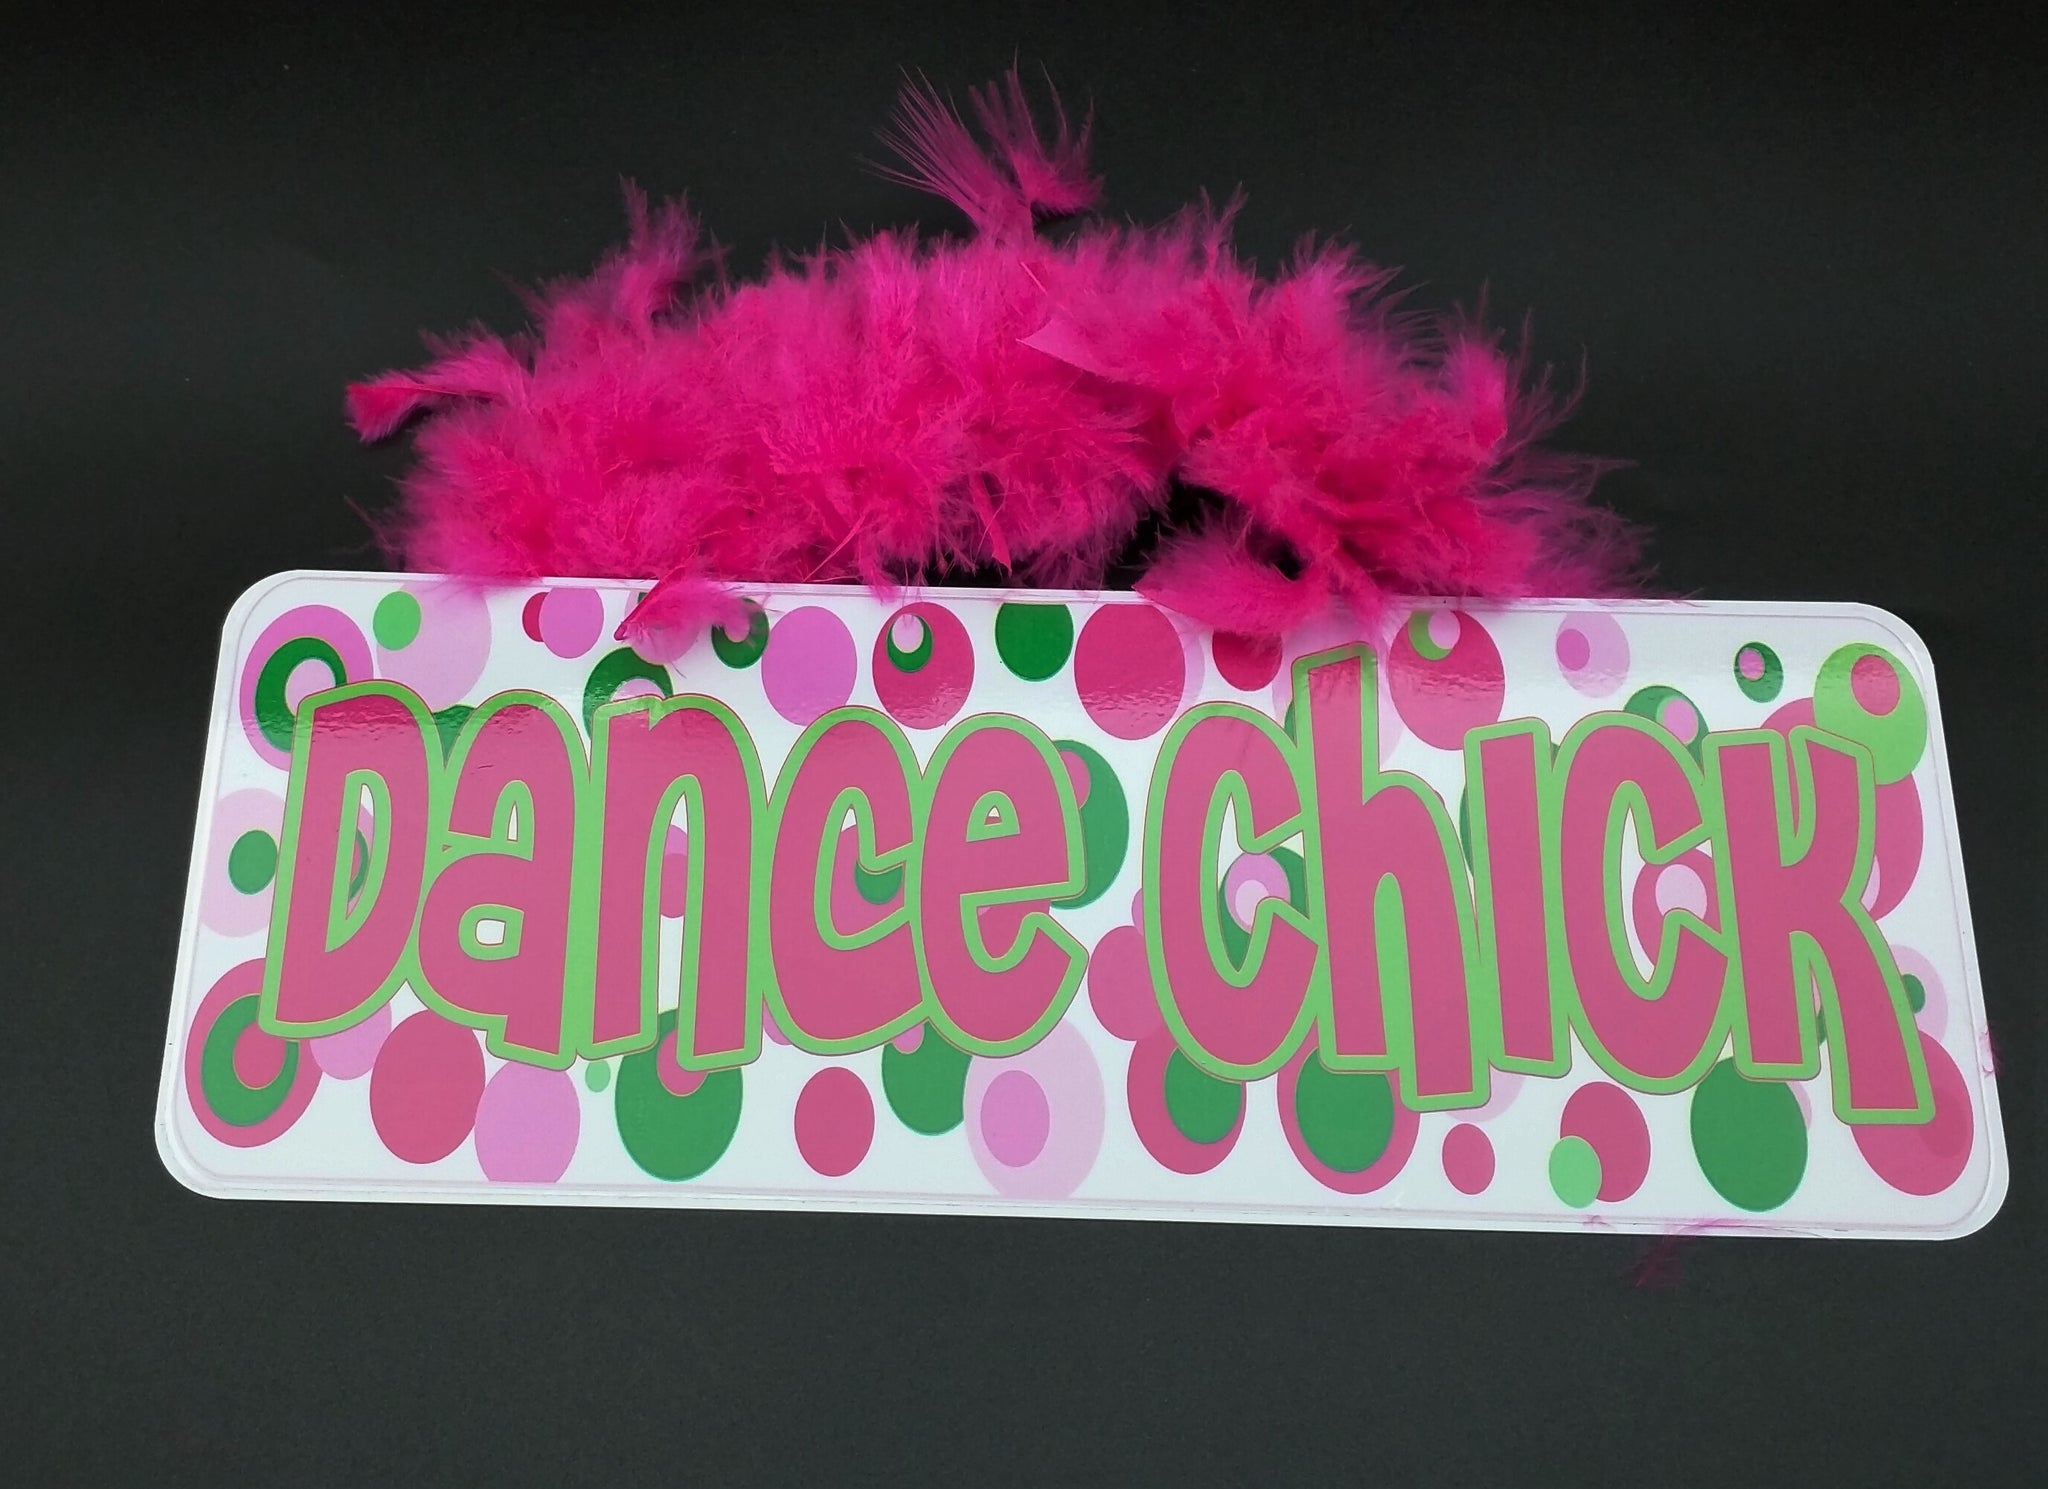 Dance chick sign